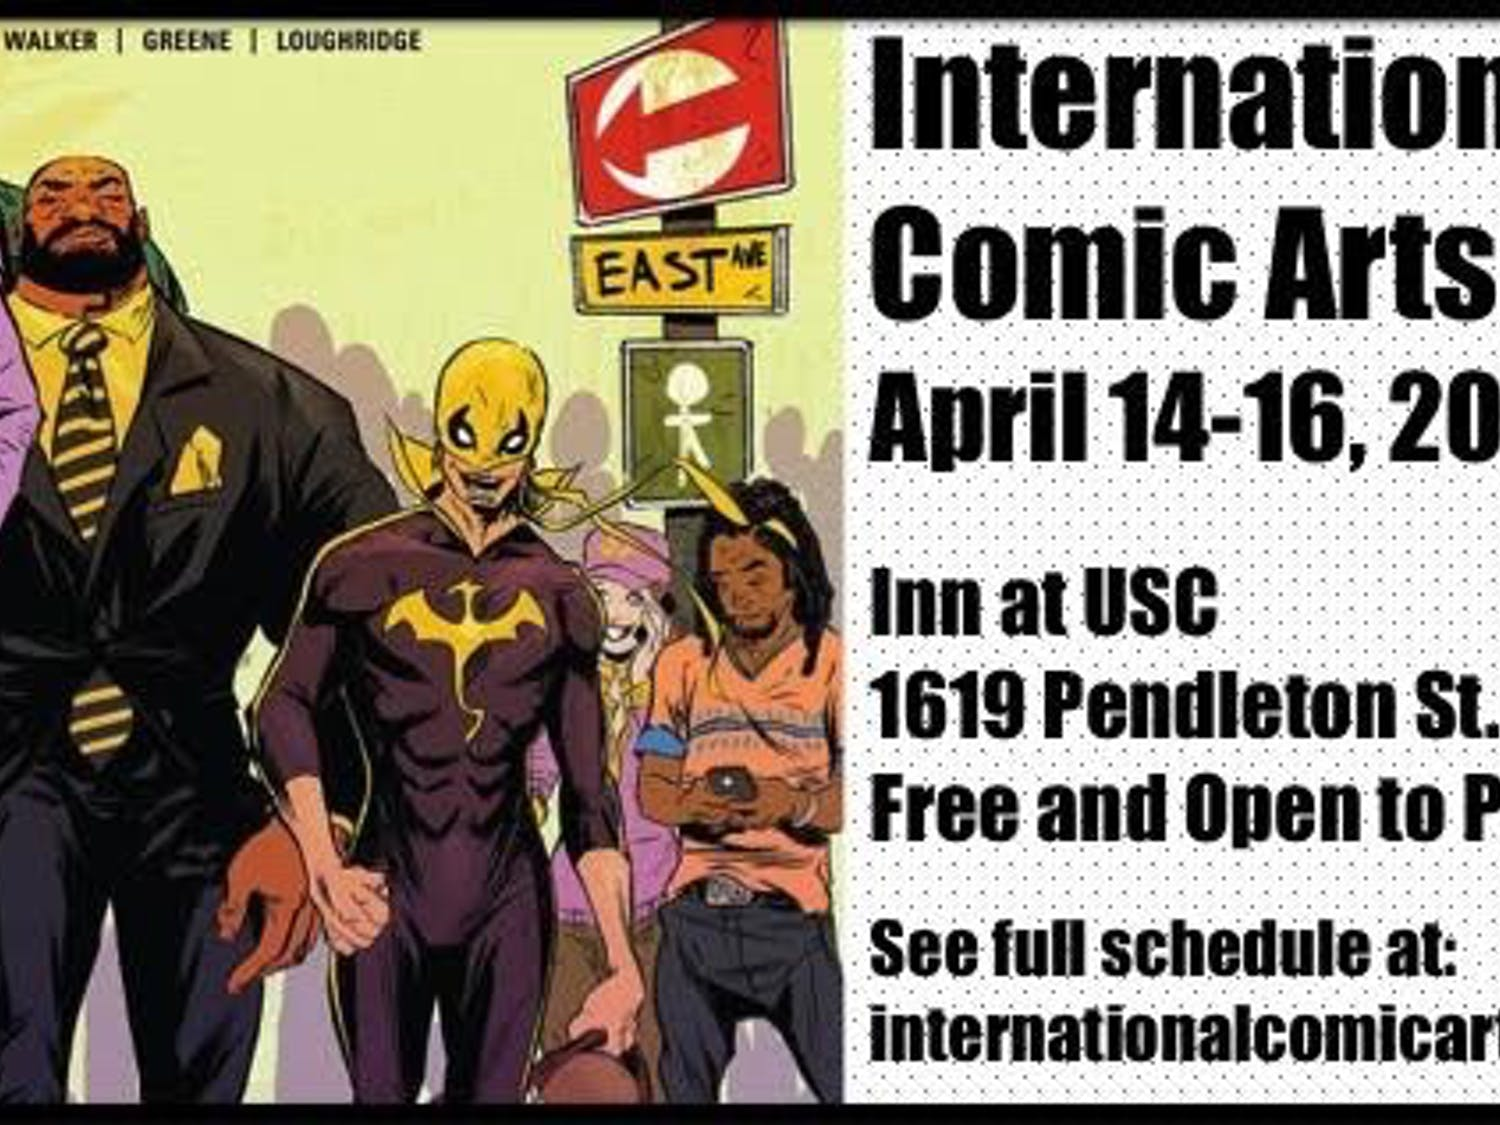 The International Comic Arts Forum strives to educate the public about the art of comics and promote this medium.